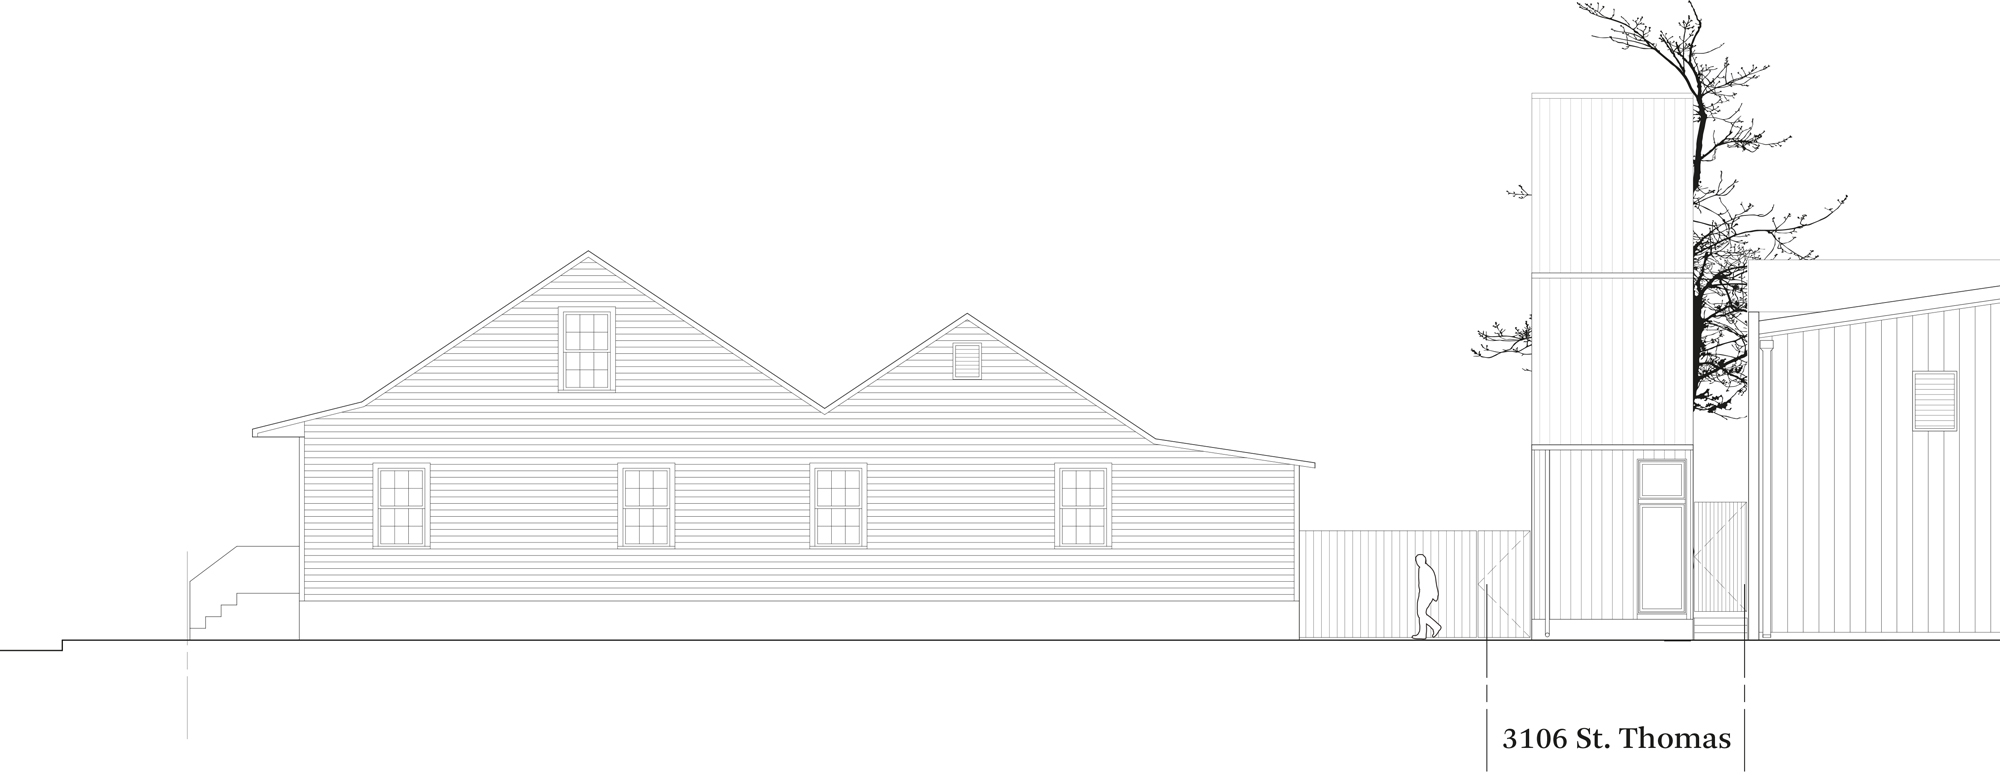 Plan of the street elevation of the first Starter Home* by OJT (Office of Jonathan Tate)